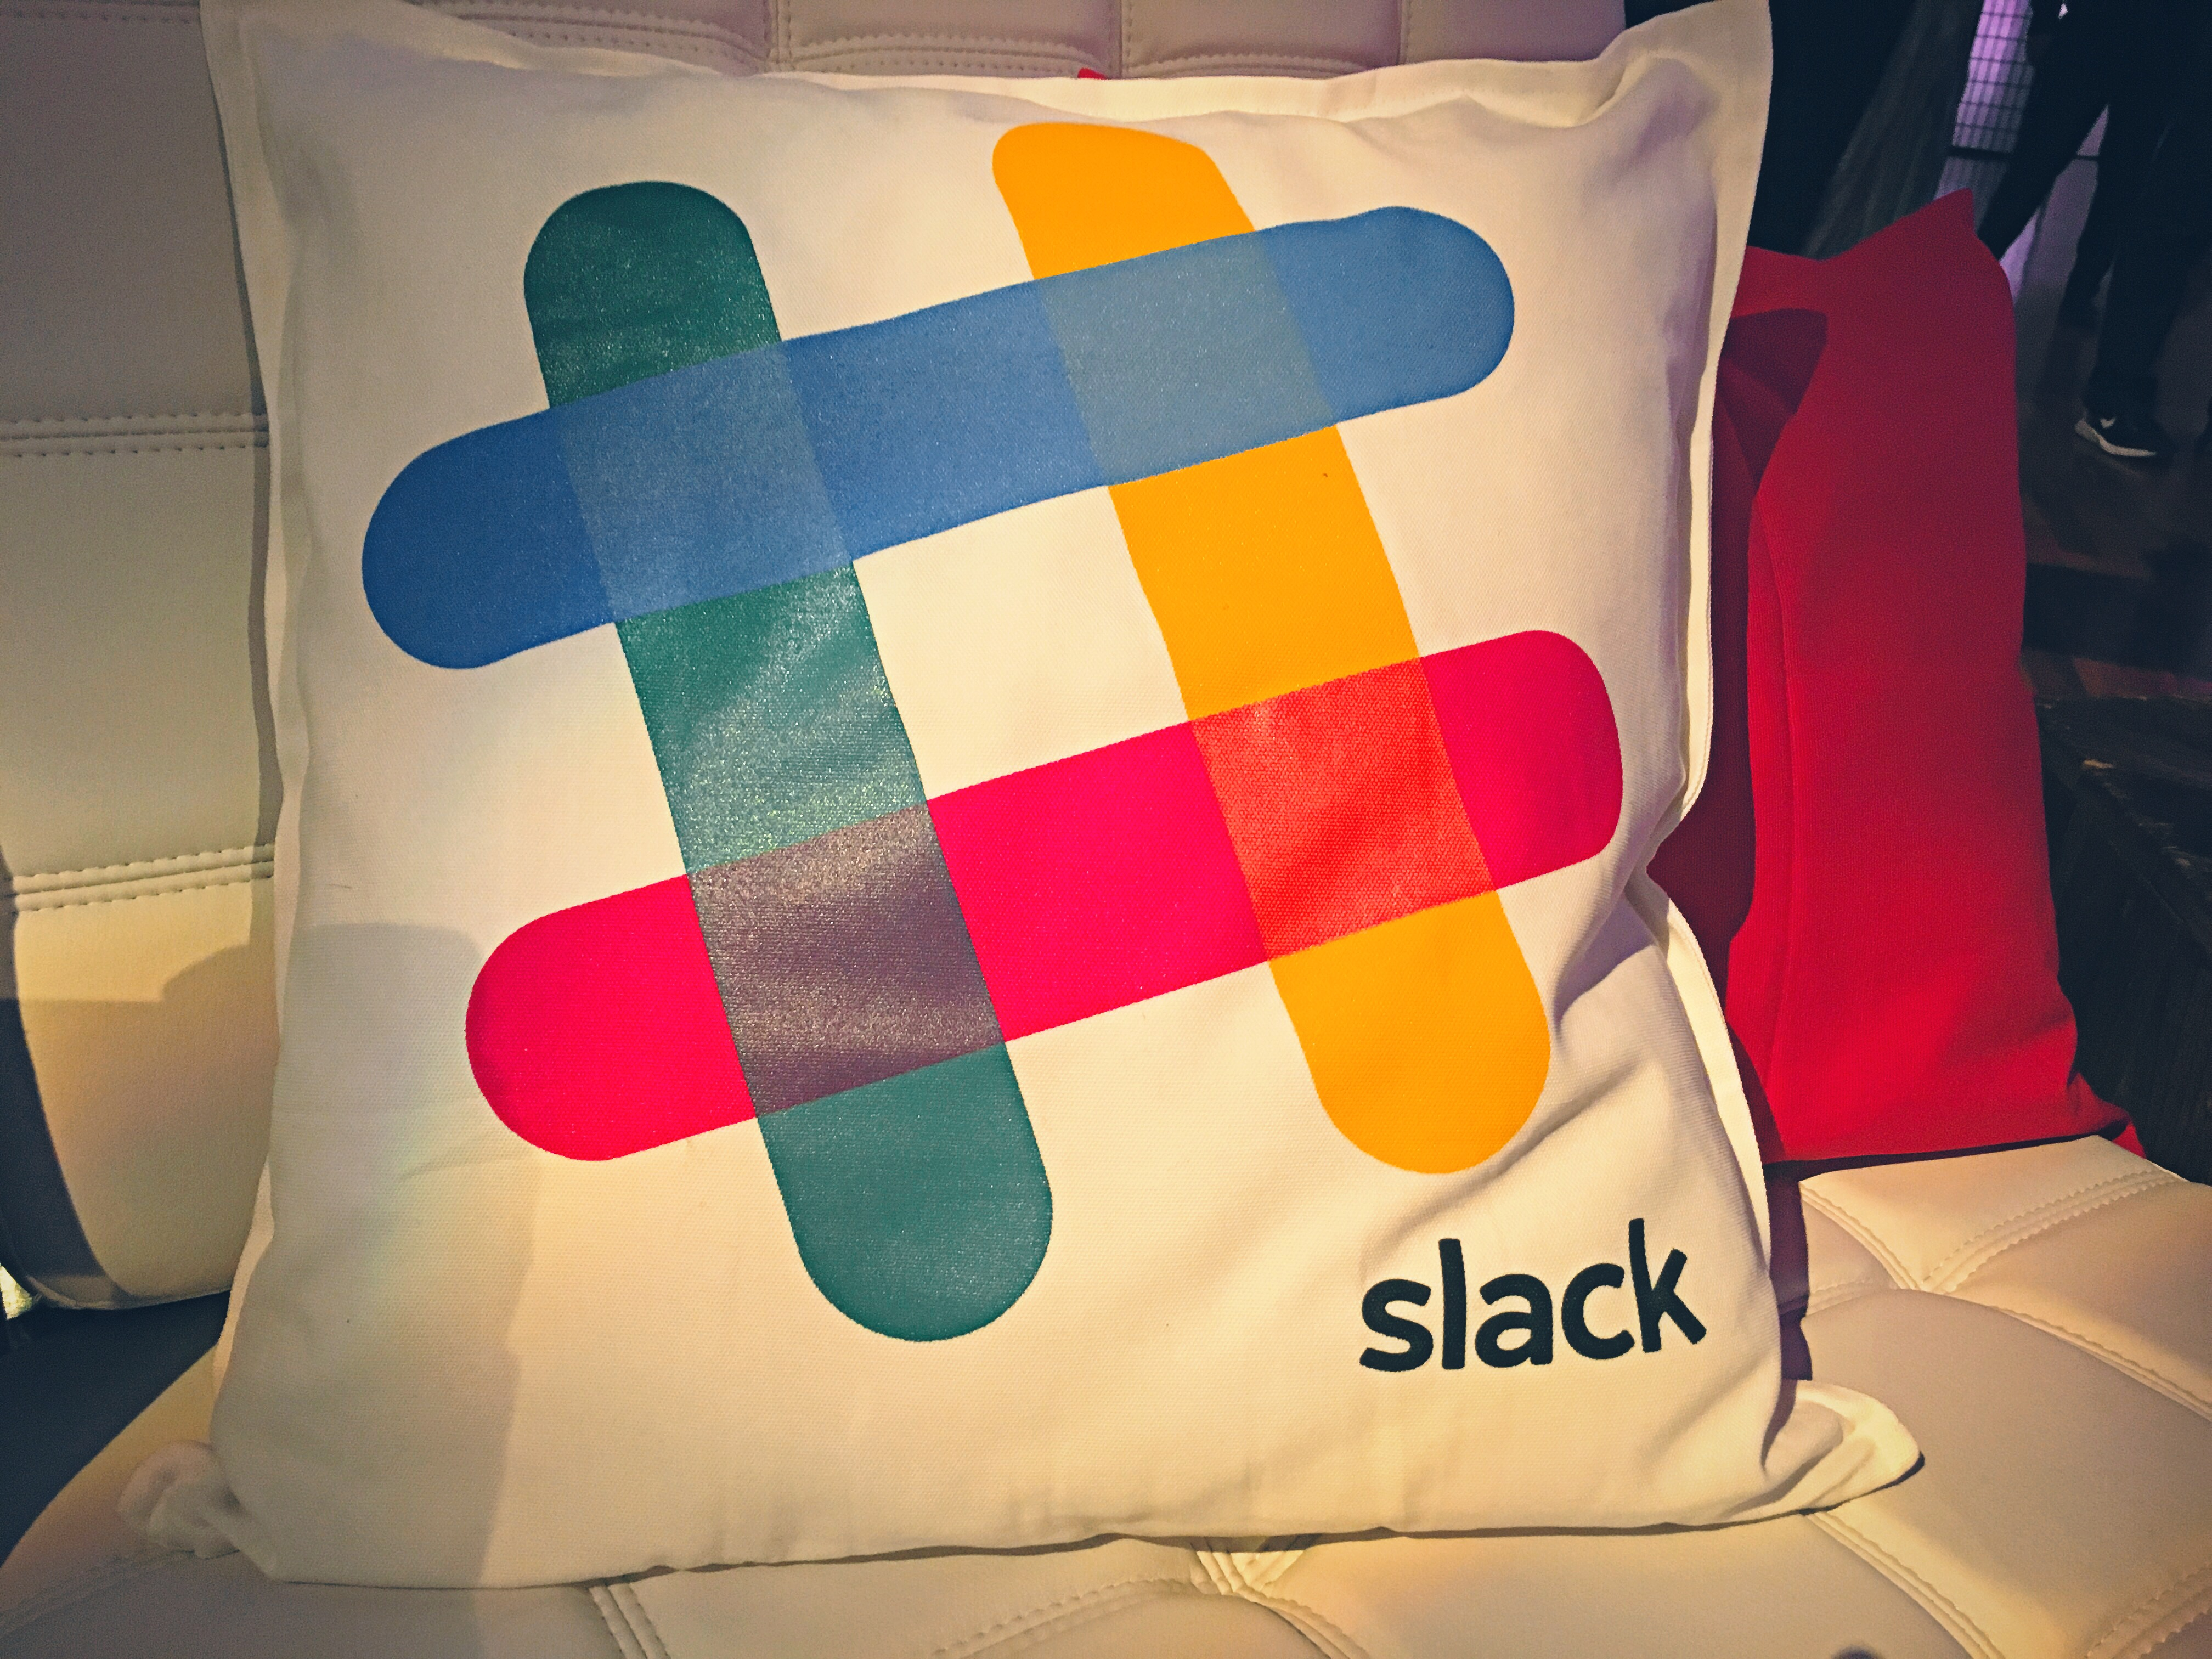 Slack's new Shared Channels feature is nearly magical